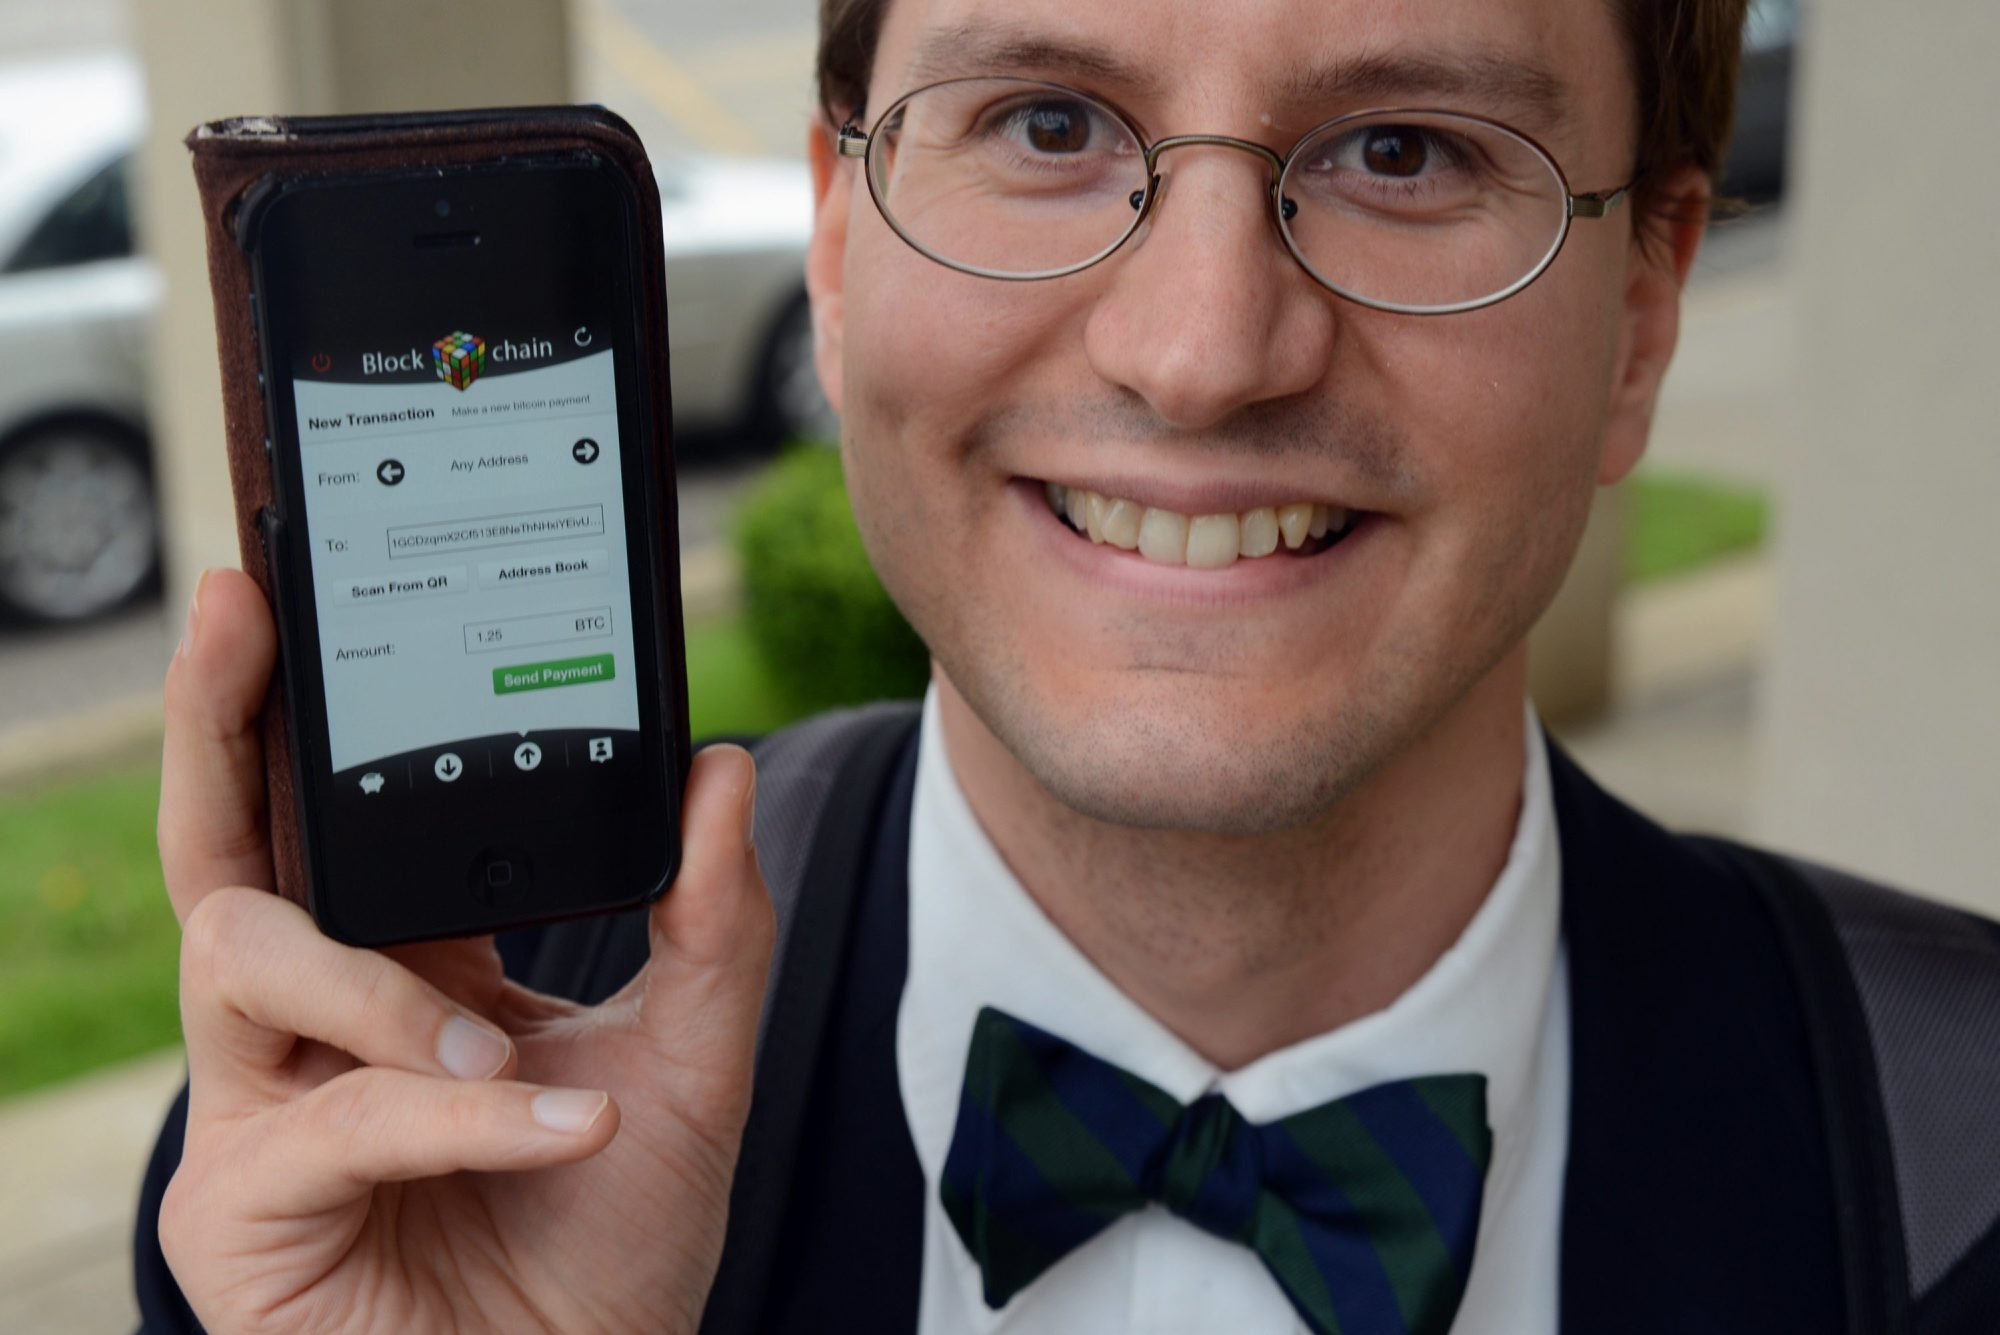 Richard Sennot/Minneapolis Star Tribune  Brian Goss, a radiology resident in Rochester, Minn., holds an iPhone with the Bitcoin digital transaction form ready for a payment.